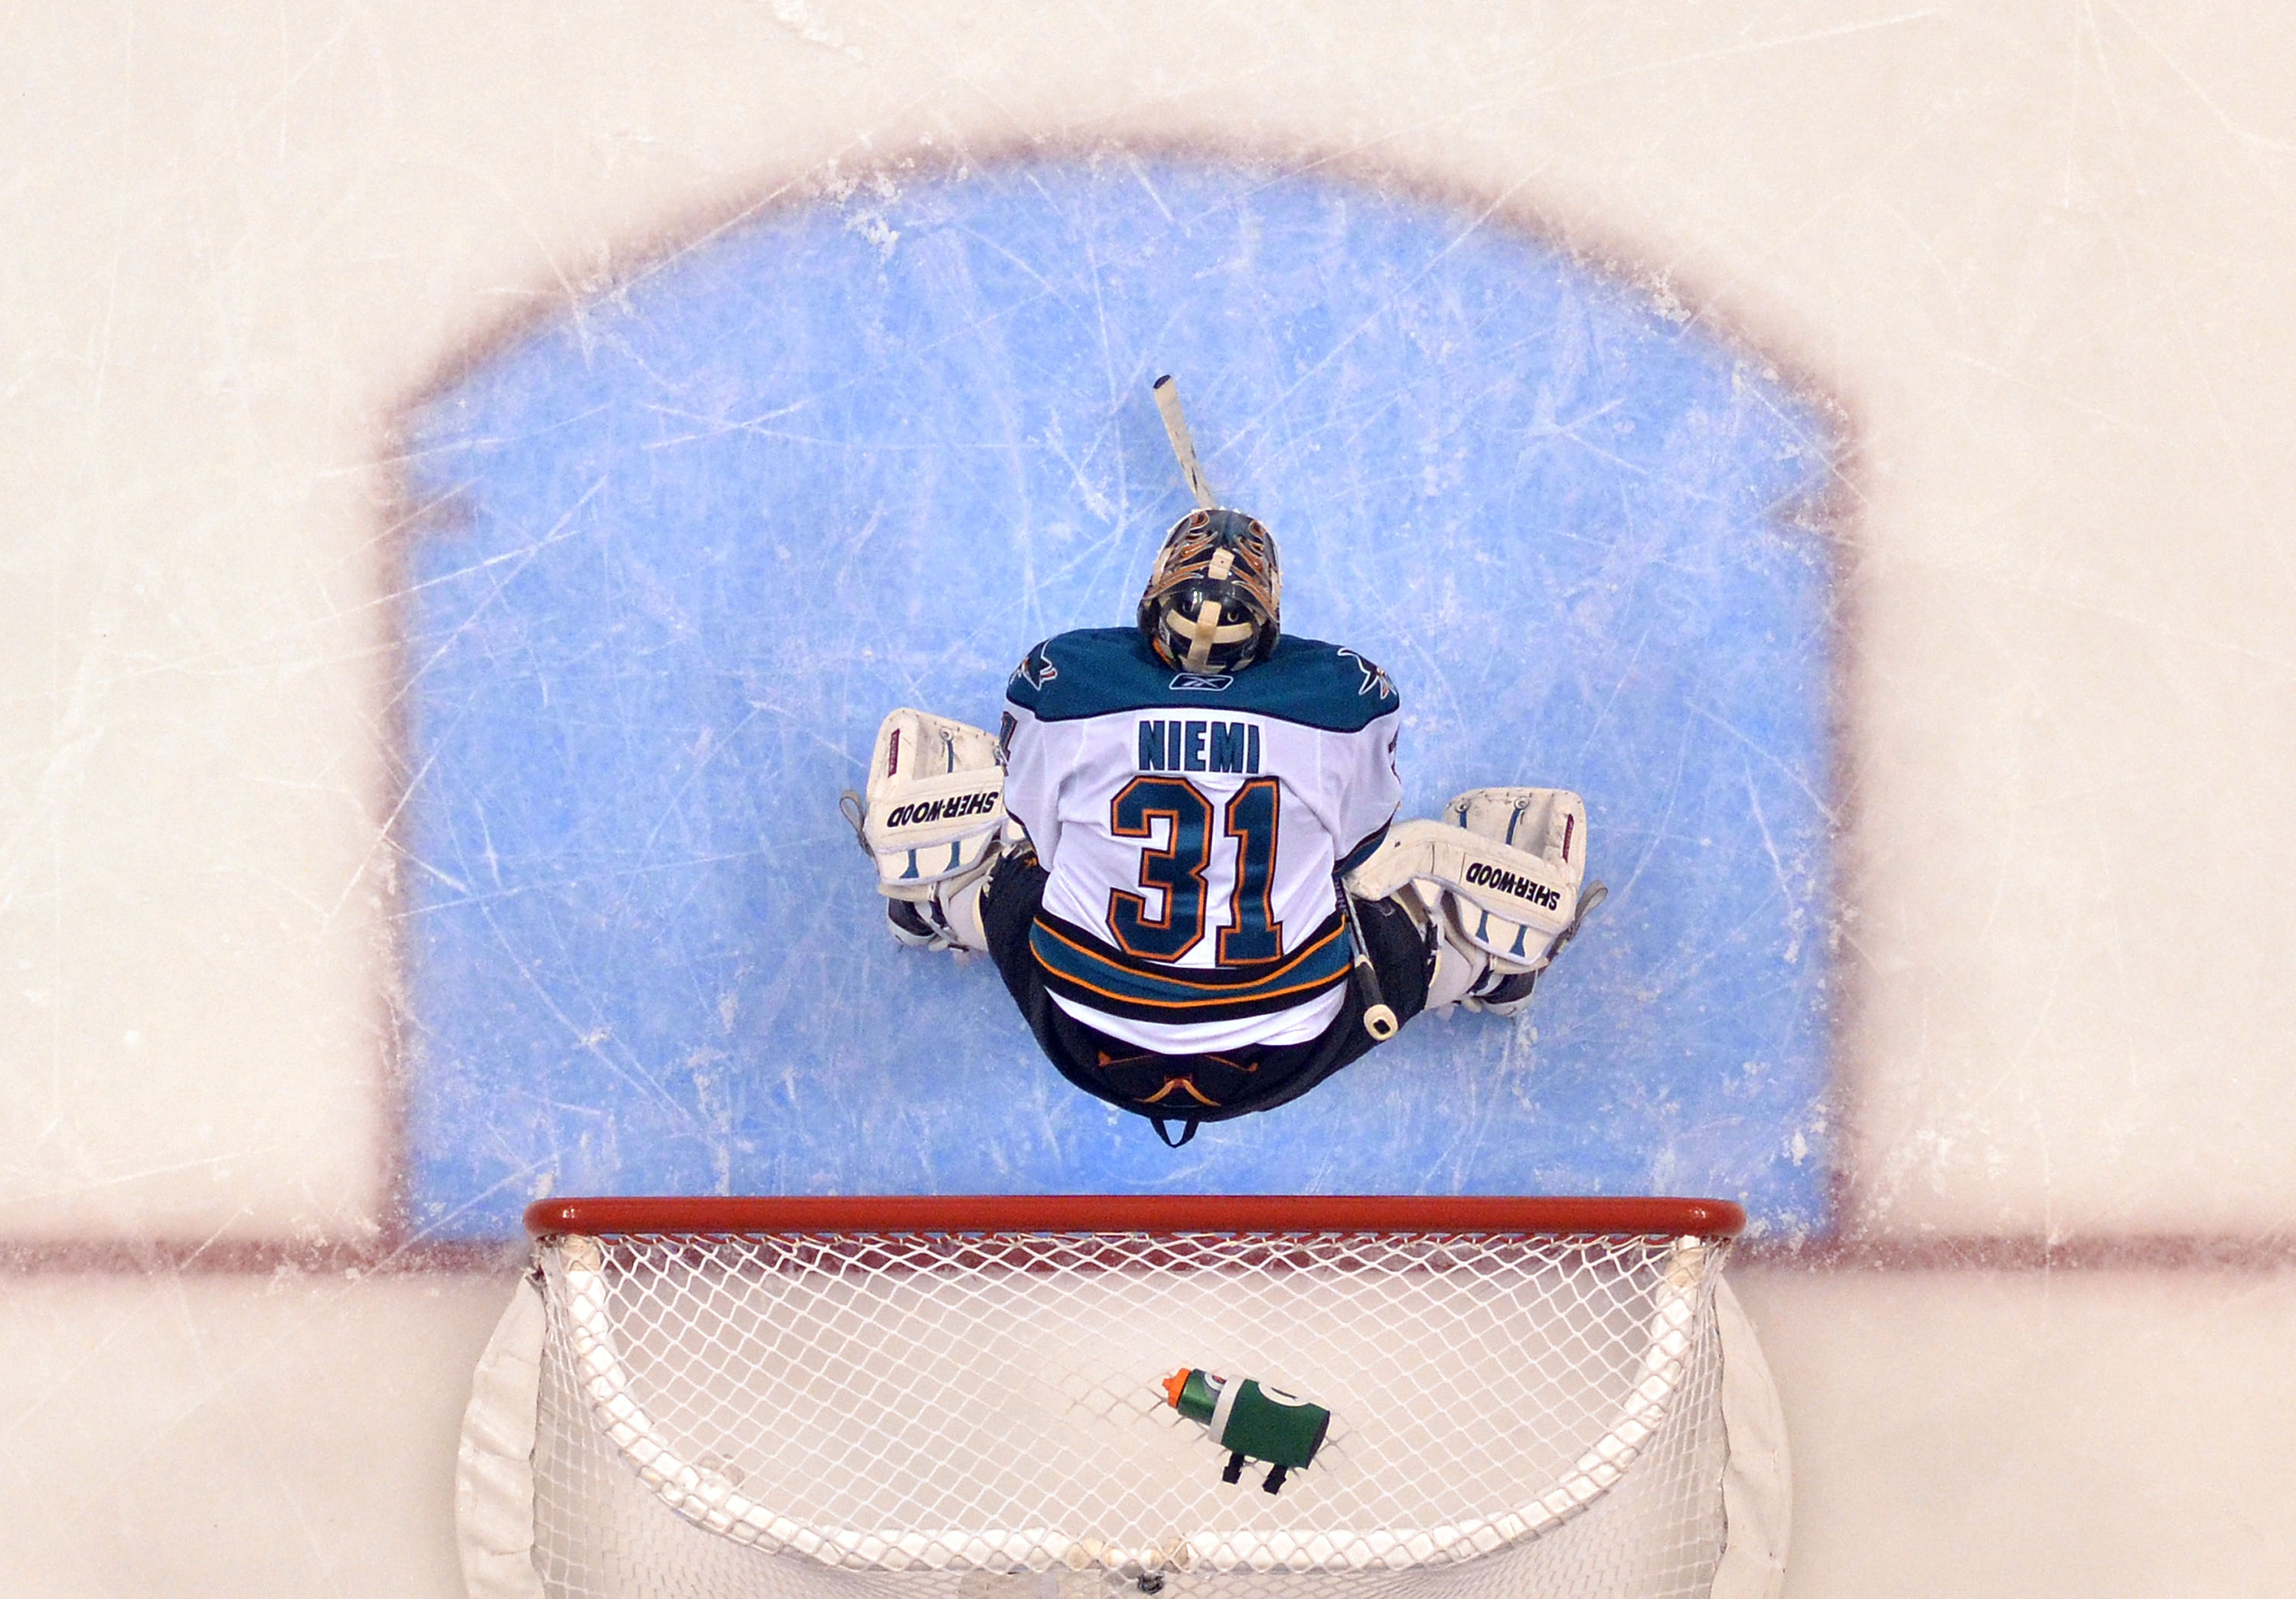 Niemi was spectacular in Game 1